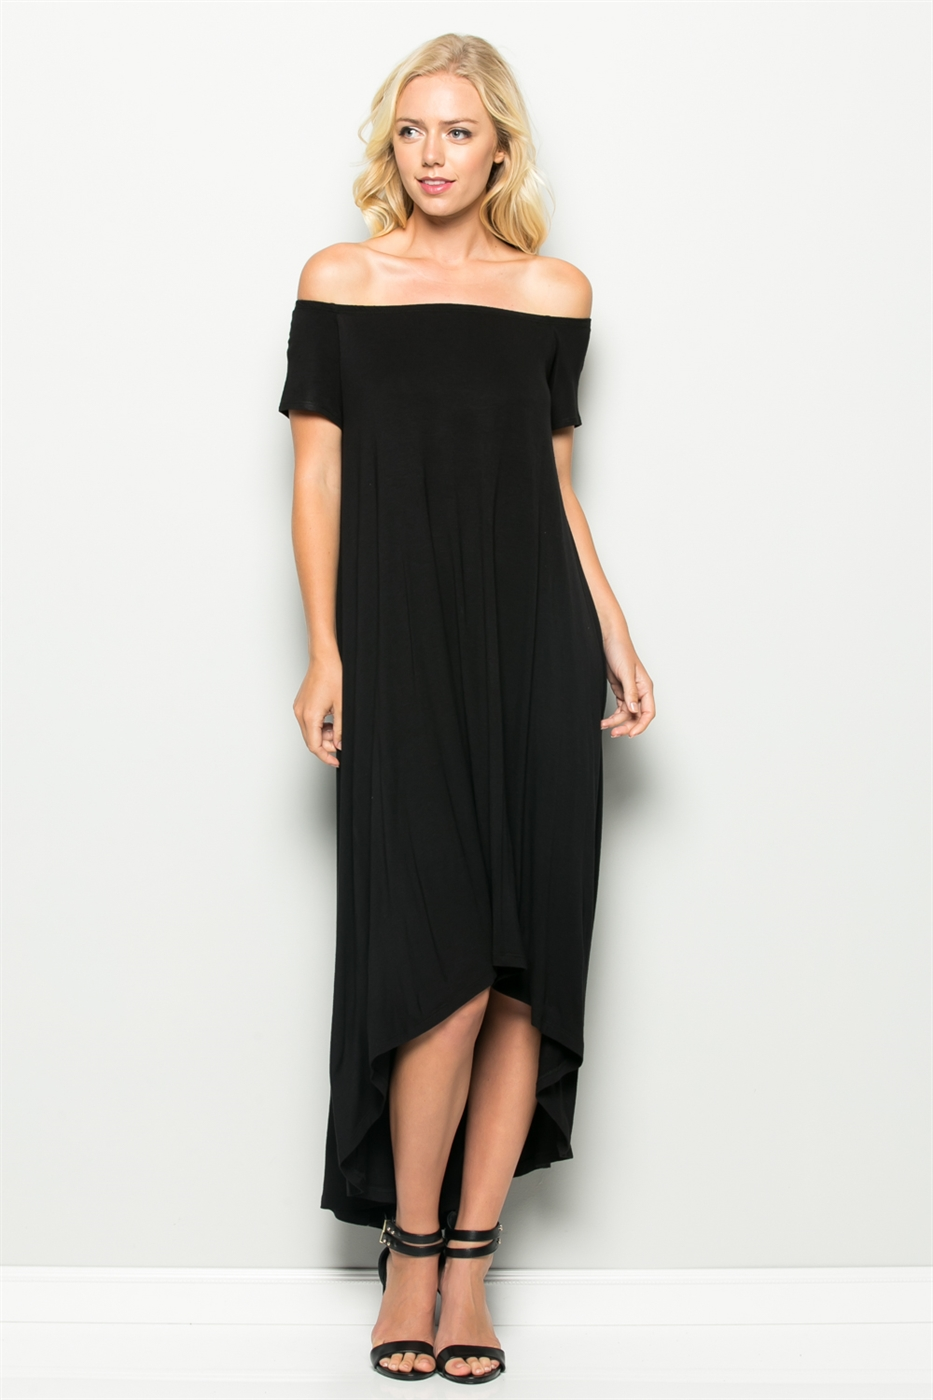 OFF SHOULDER OPEN BACK DRESS - orangeshine.com